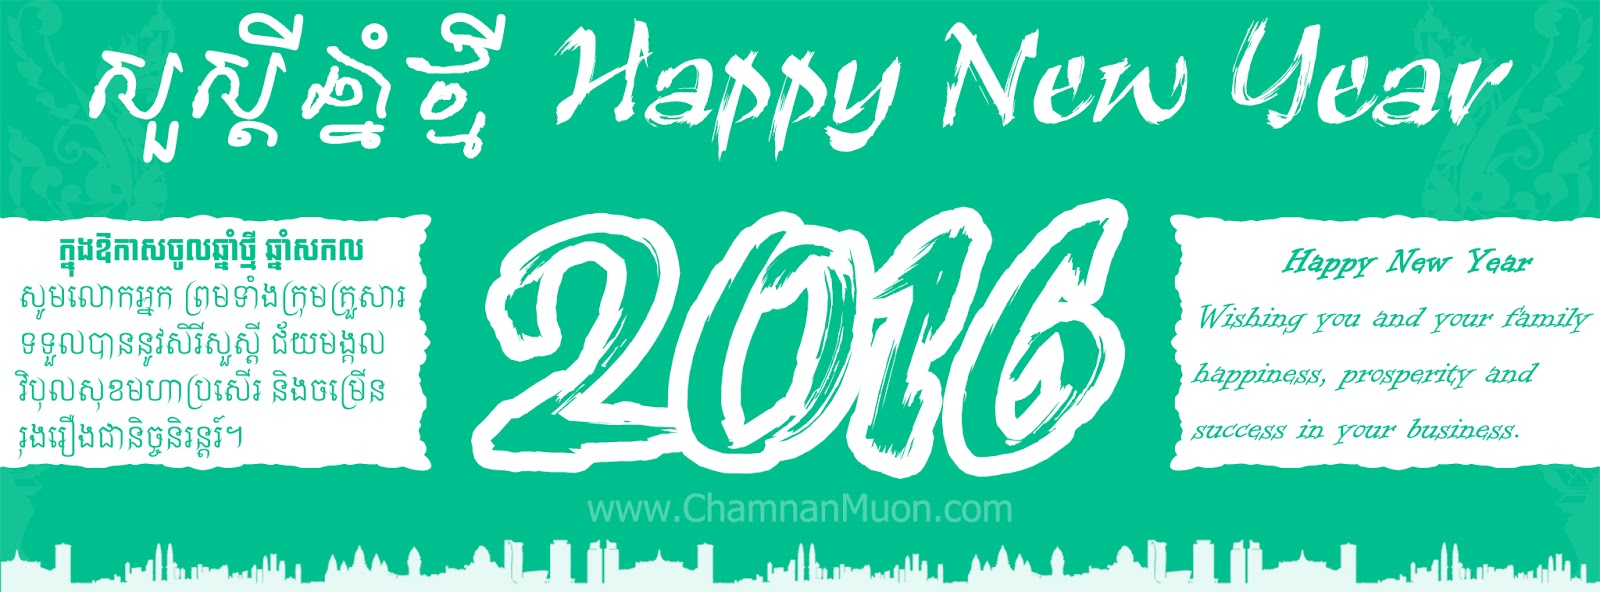 How to write happy new year in cambodian - Wish New Year in